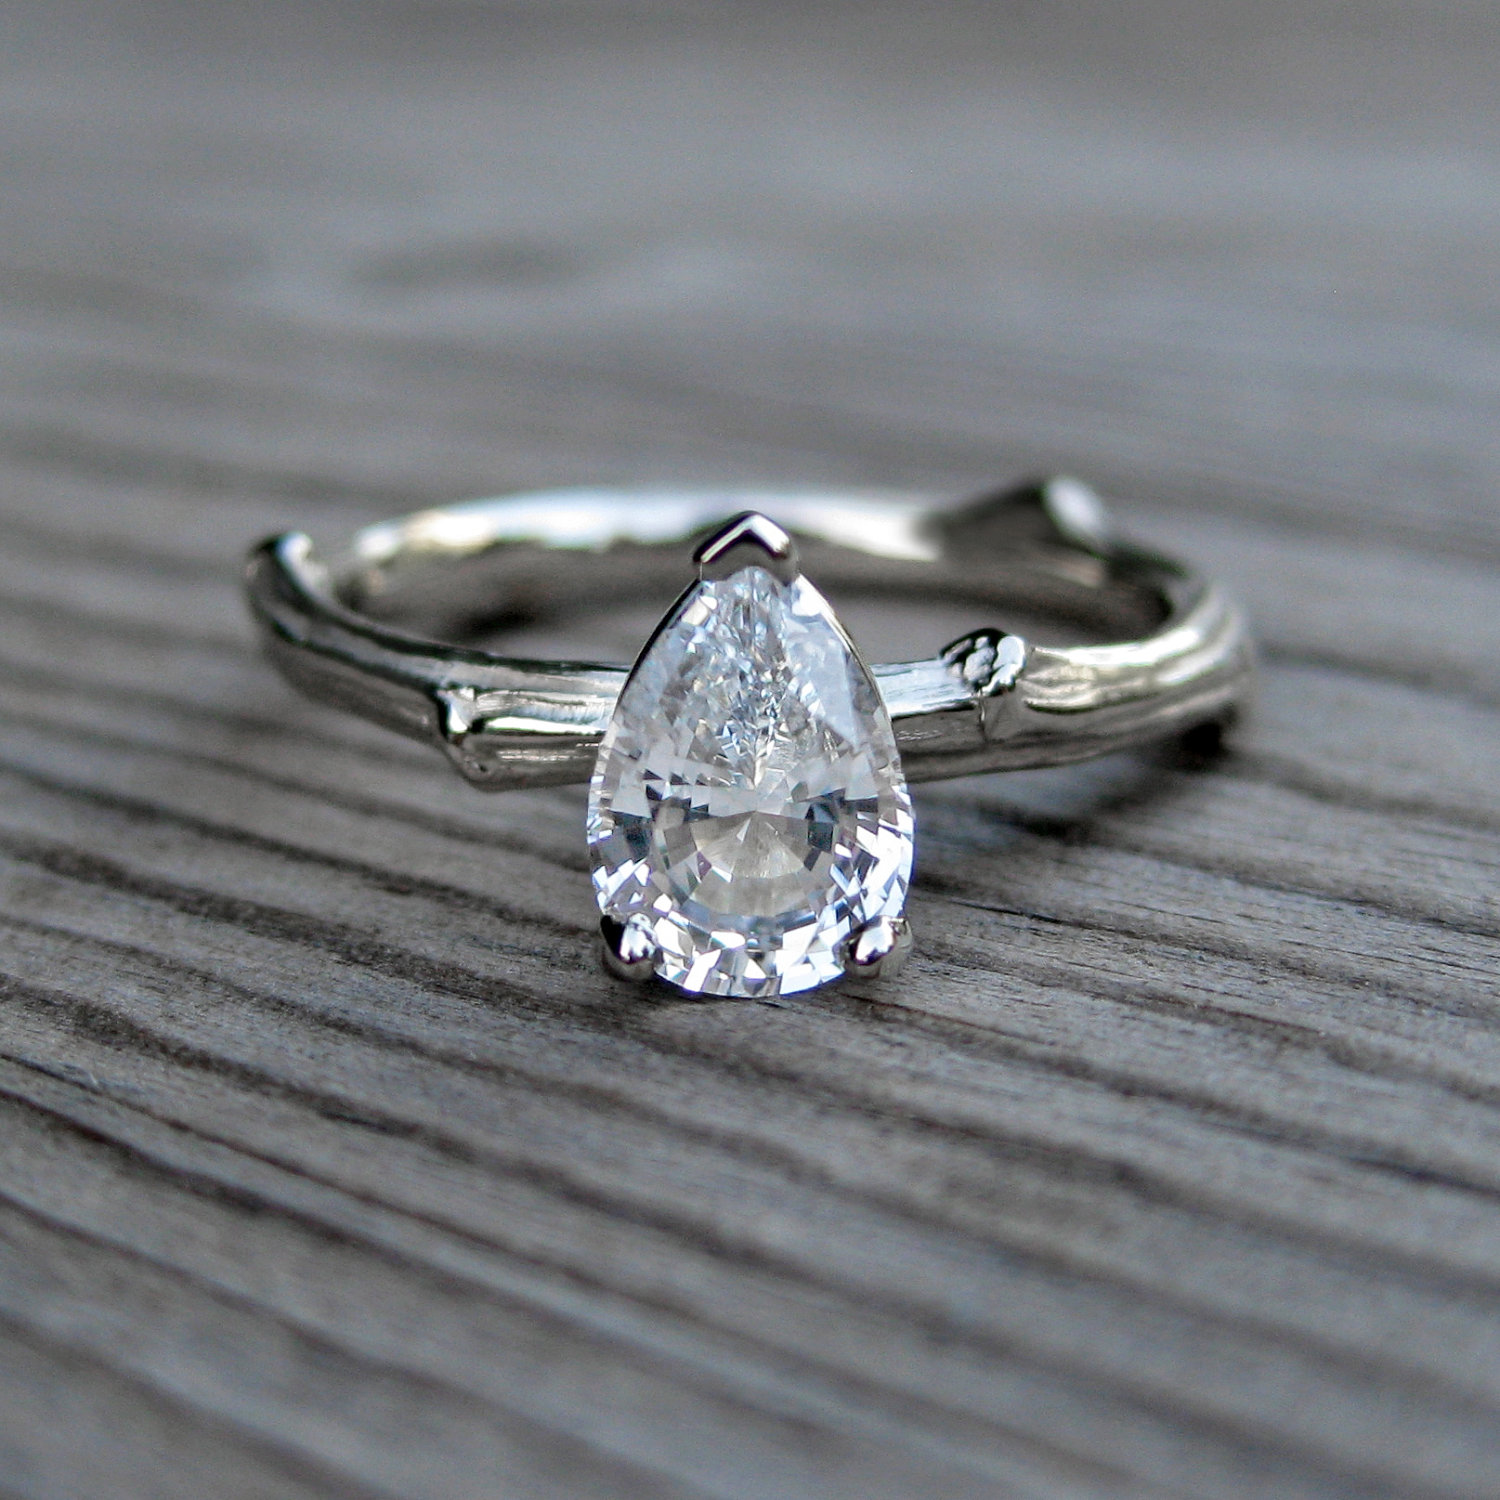 Sapphire As Engagement Ring Pear Shaped White Sapphire Engagement Ring Original